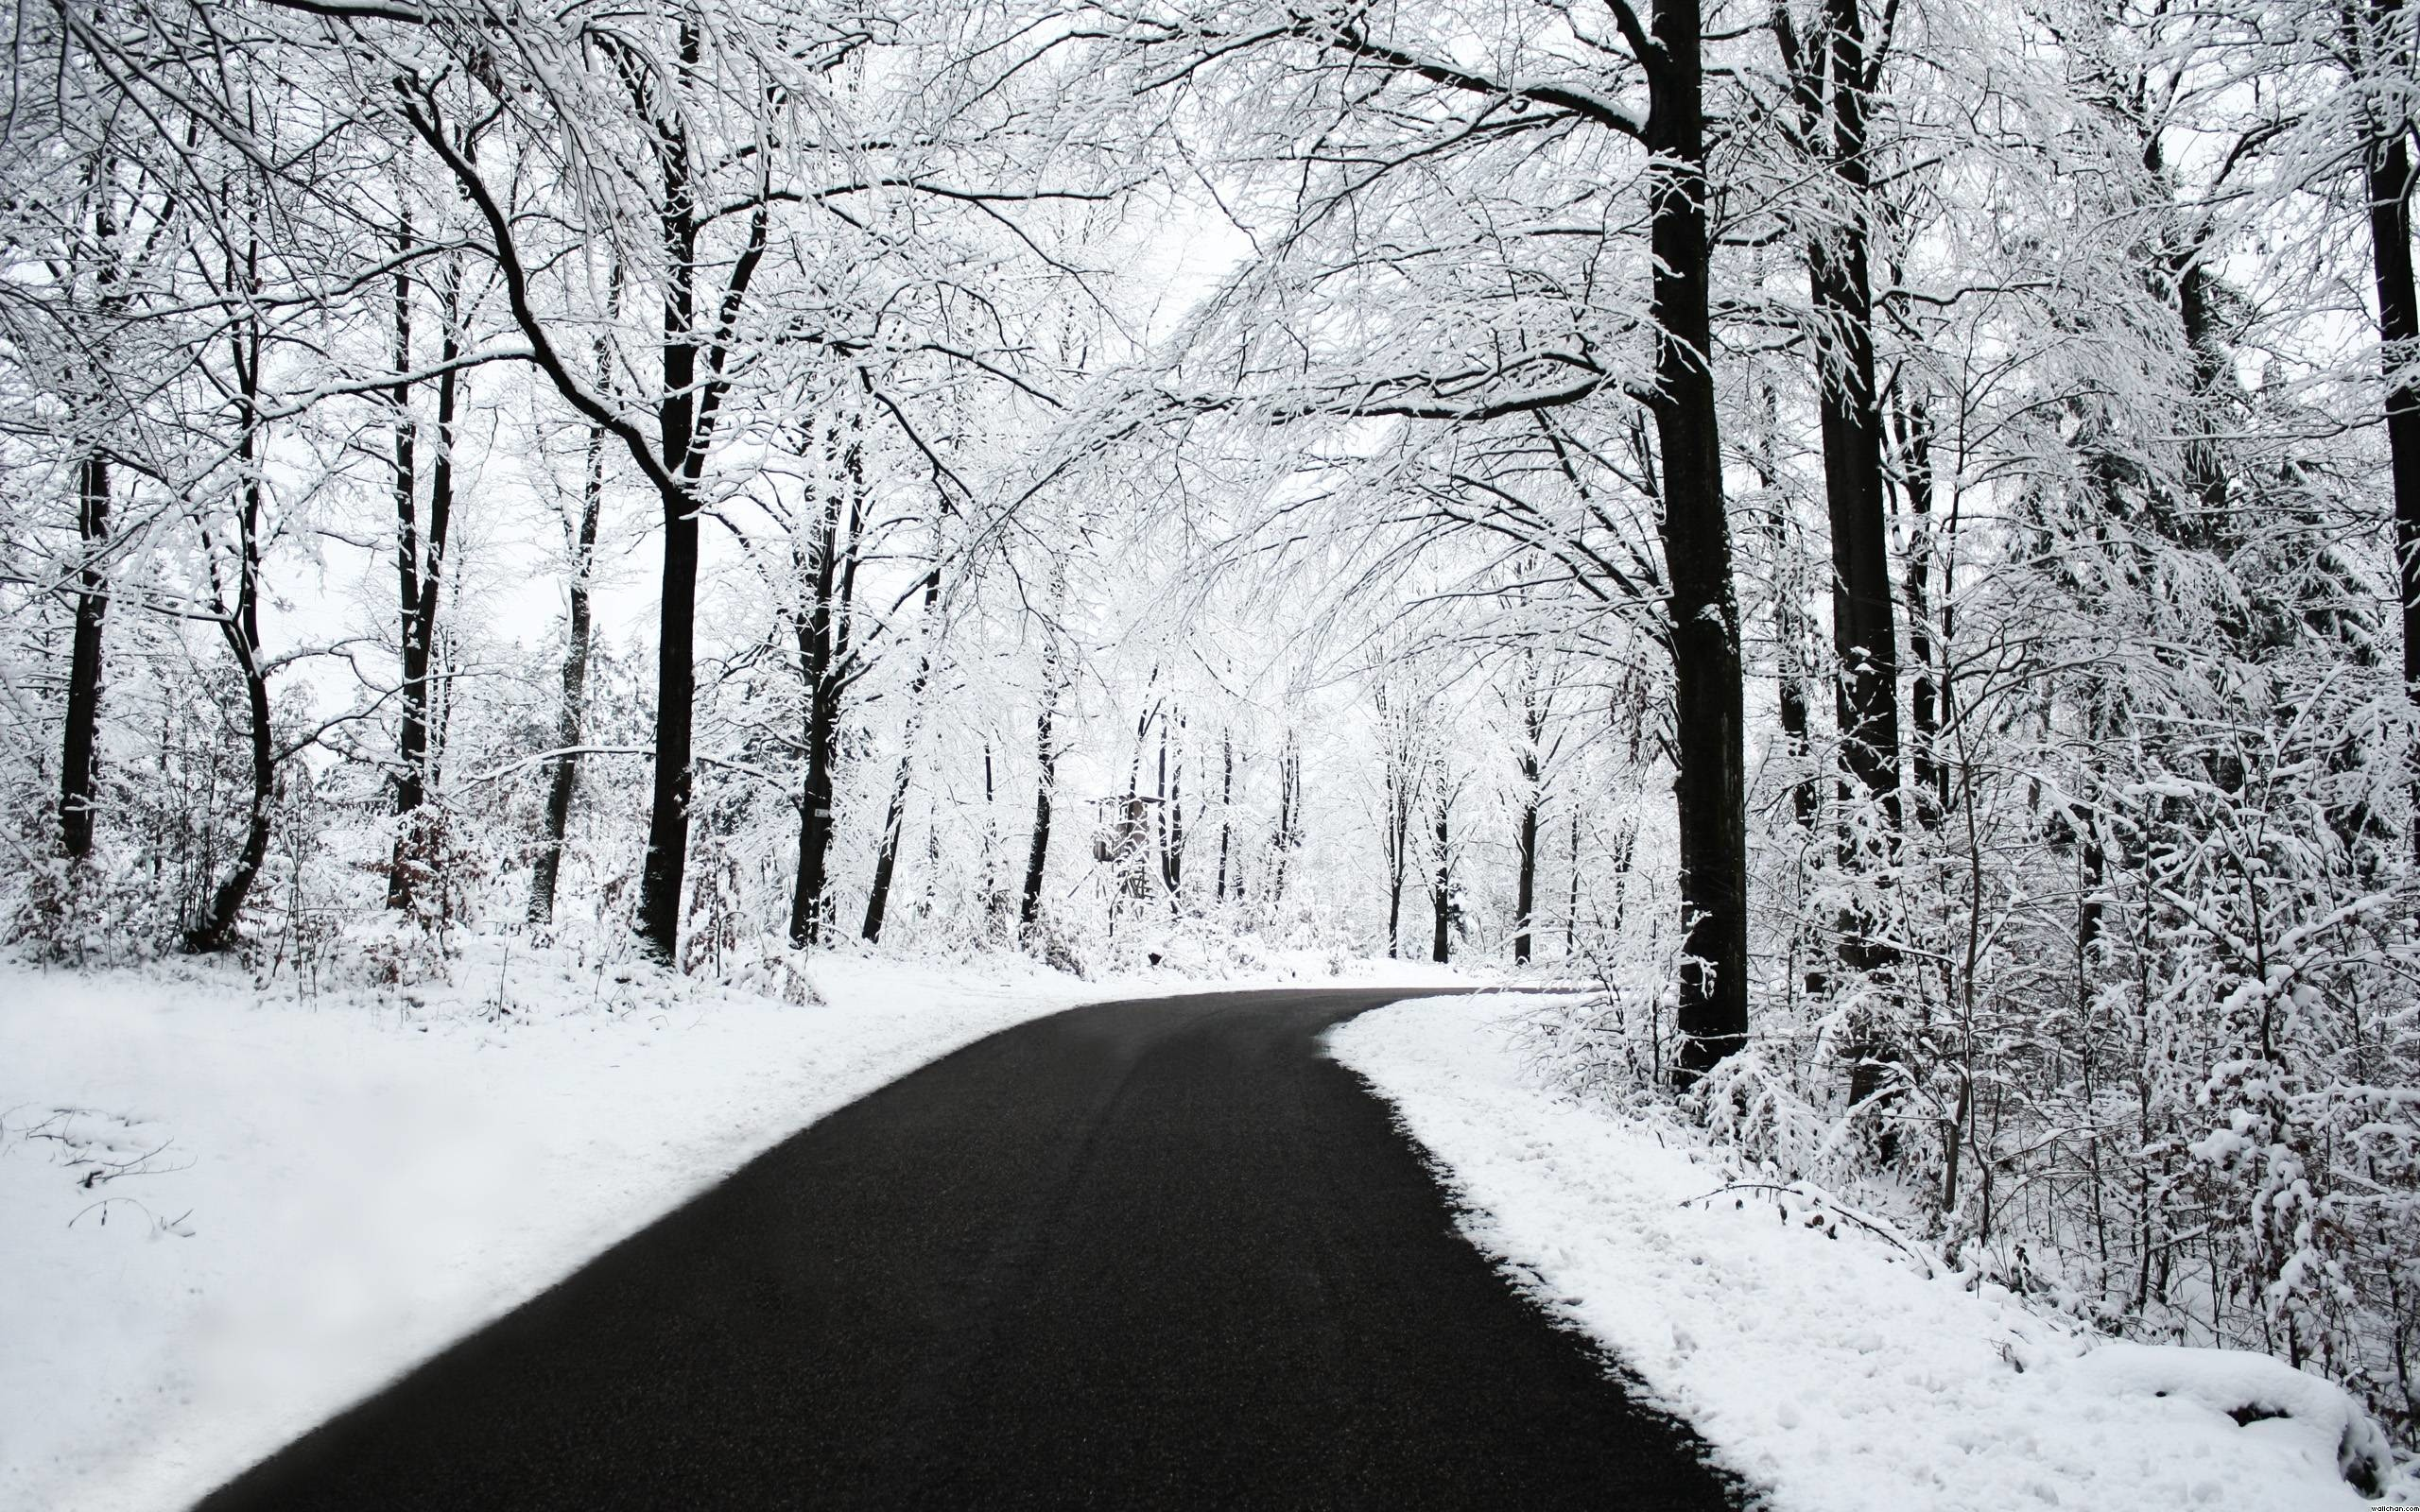 2560x1600 Winter Snow Backgrounds Hq Background 15 HD Wallpapers | Hdwalljoy.